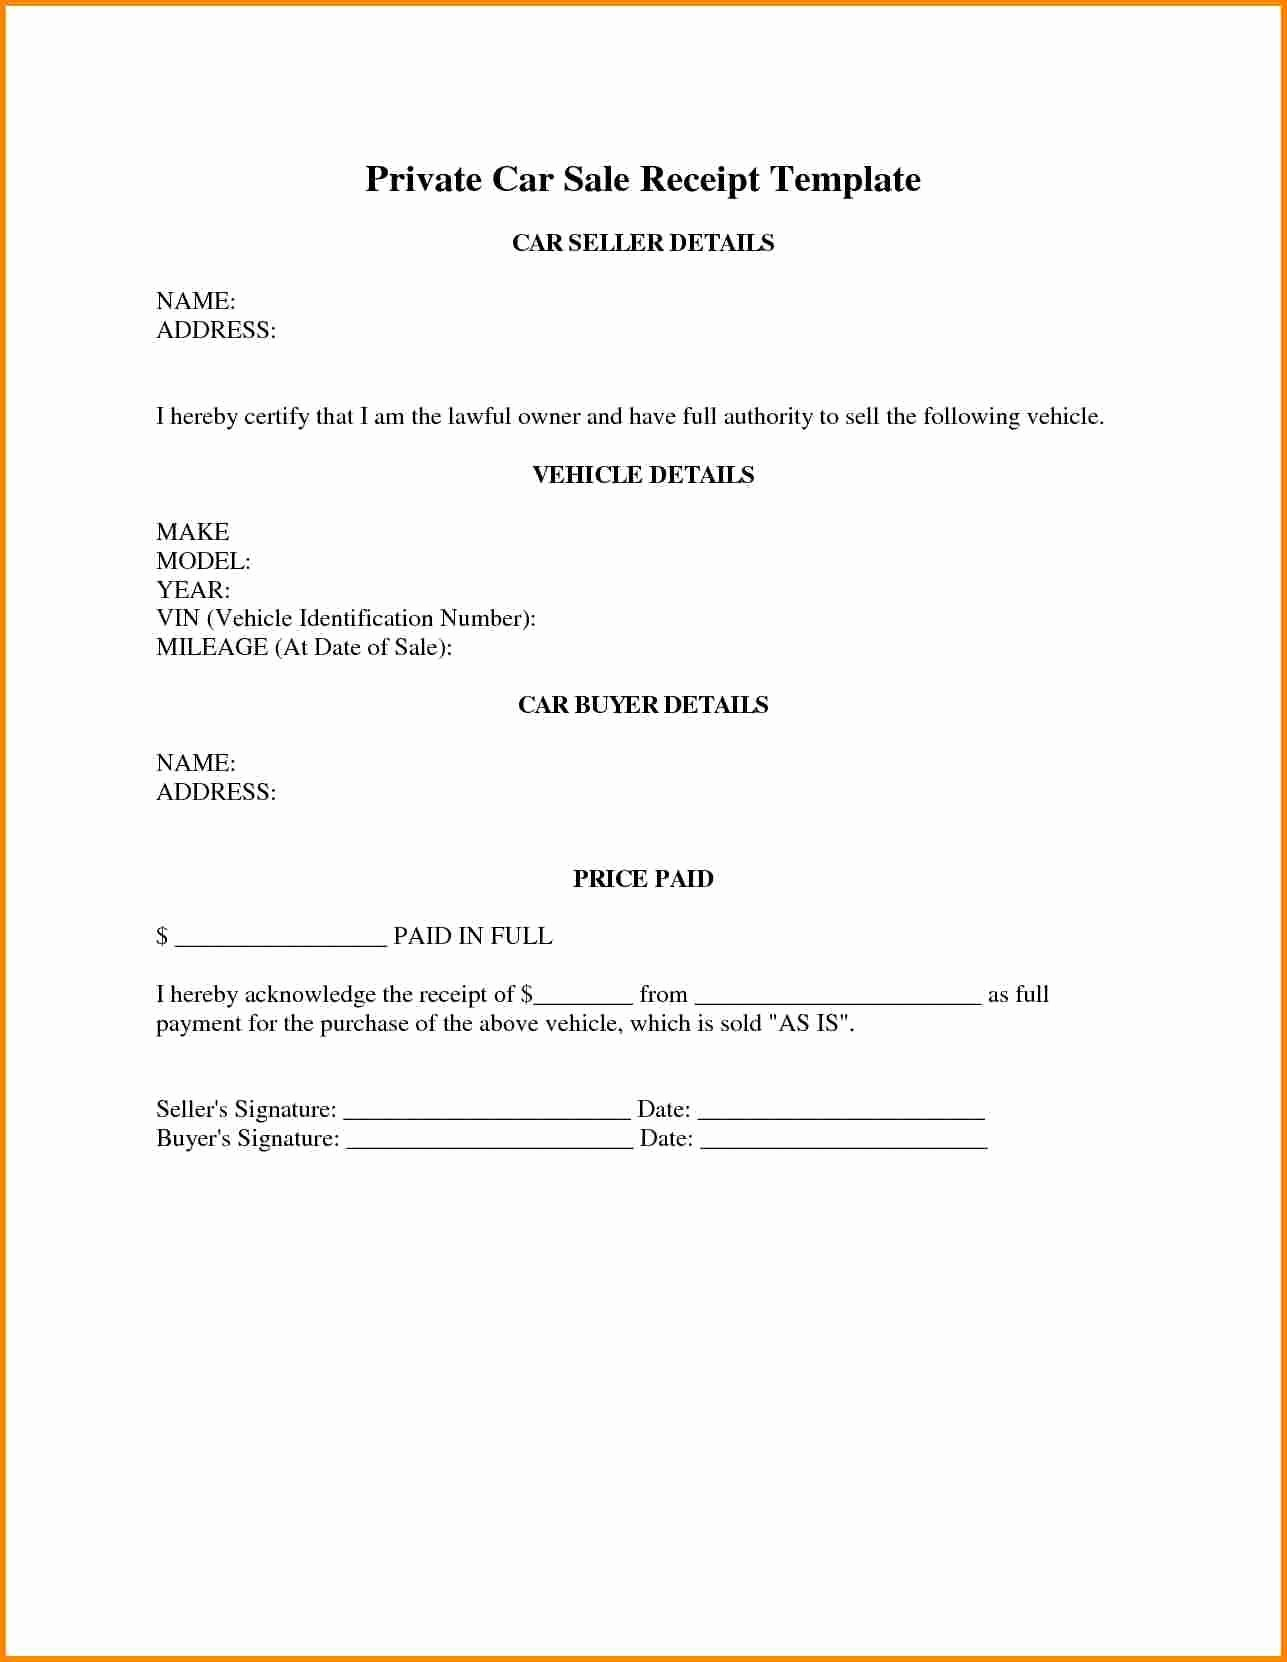 Private Car Sale Receipt Template Awesome Used Car Sales Receipt Templatehicle Sales Invoice